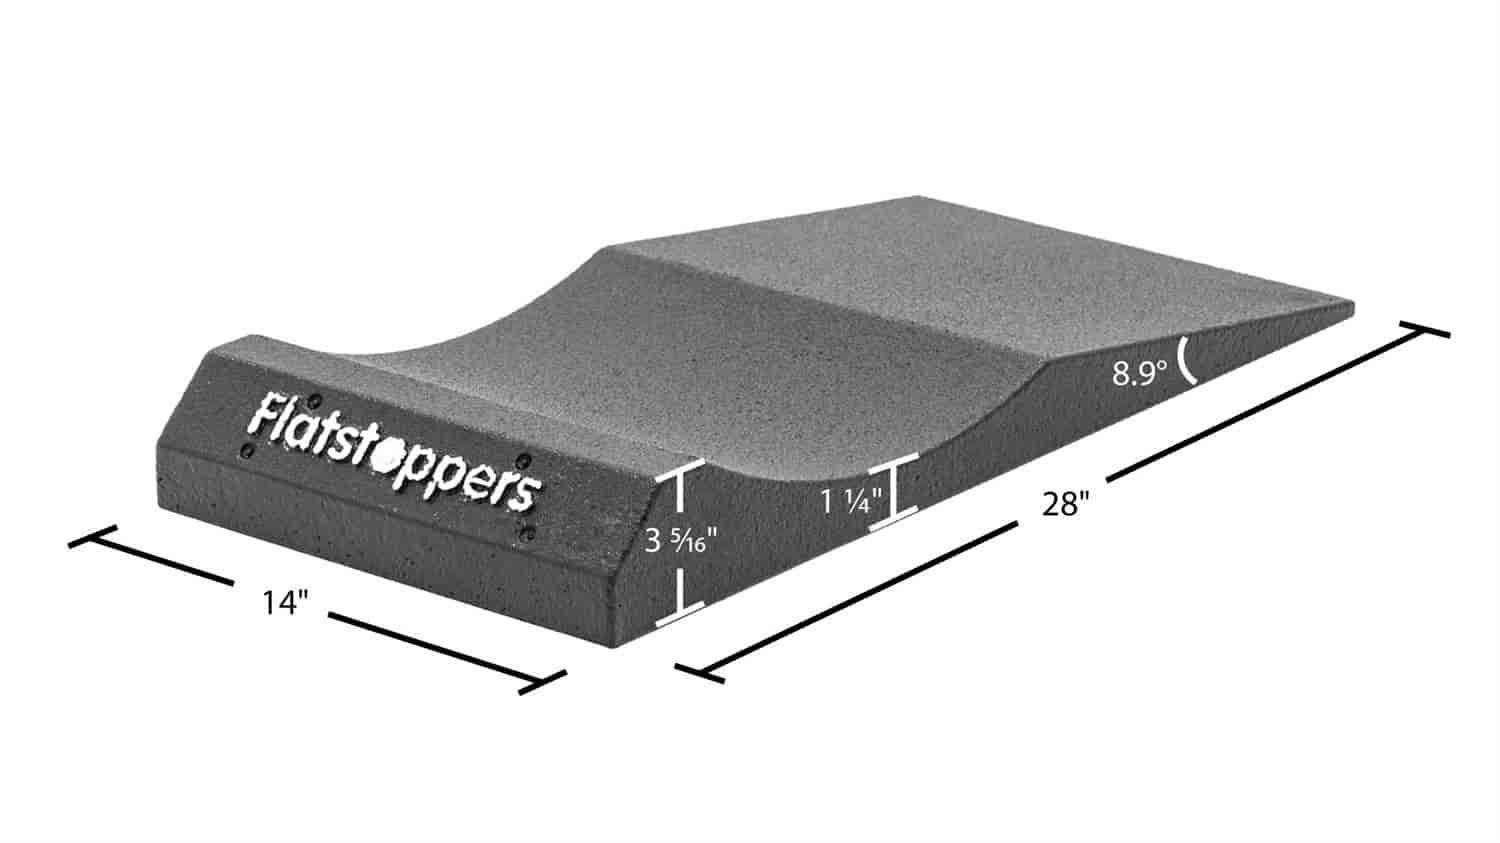 Race Ramps RR-FS - Race Ramps FlatStoppers